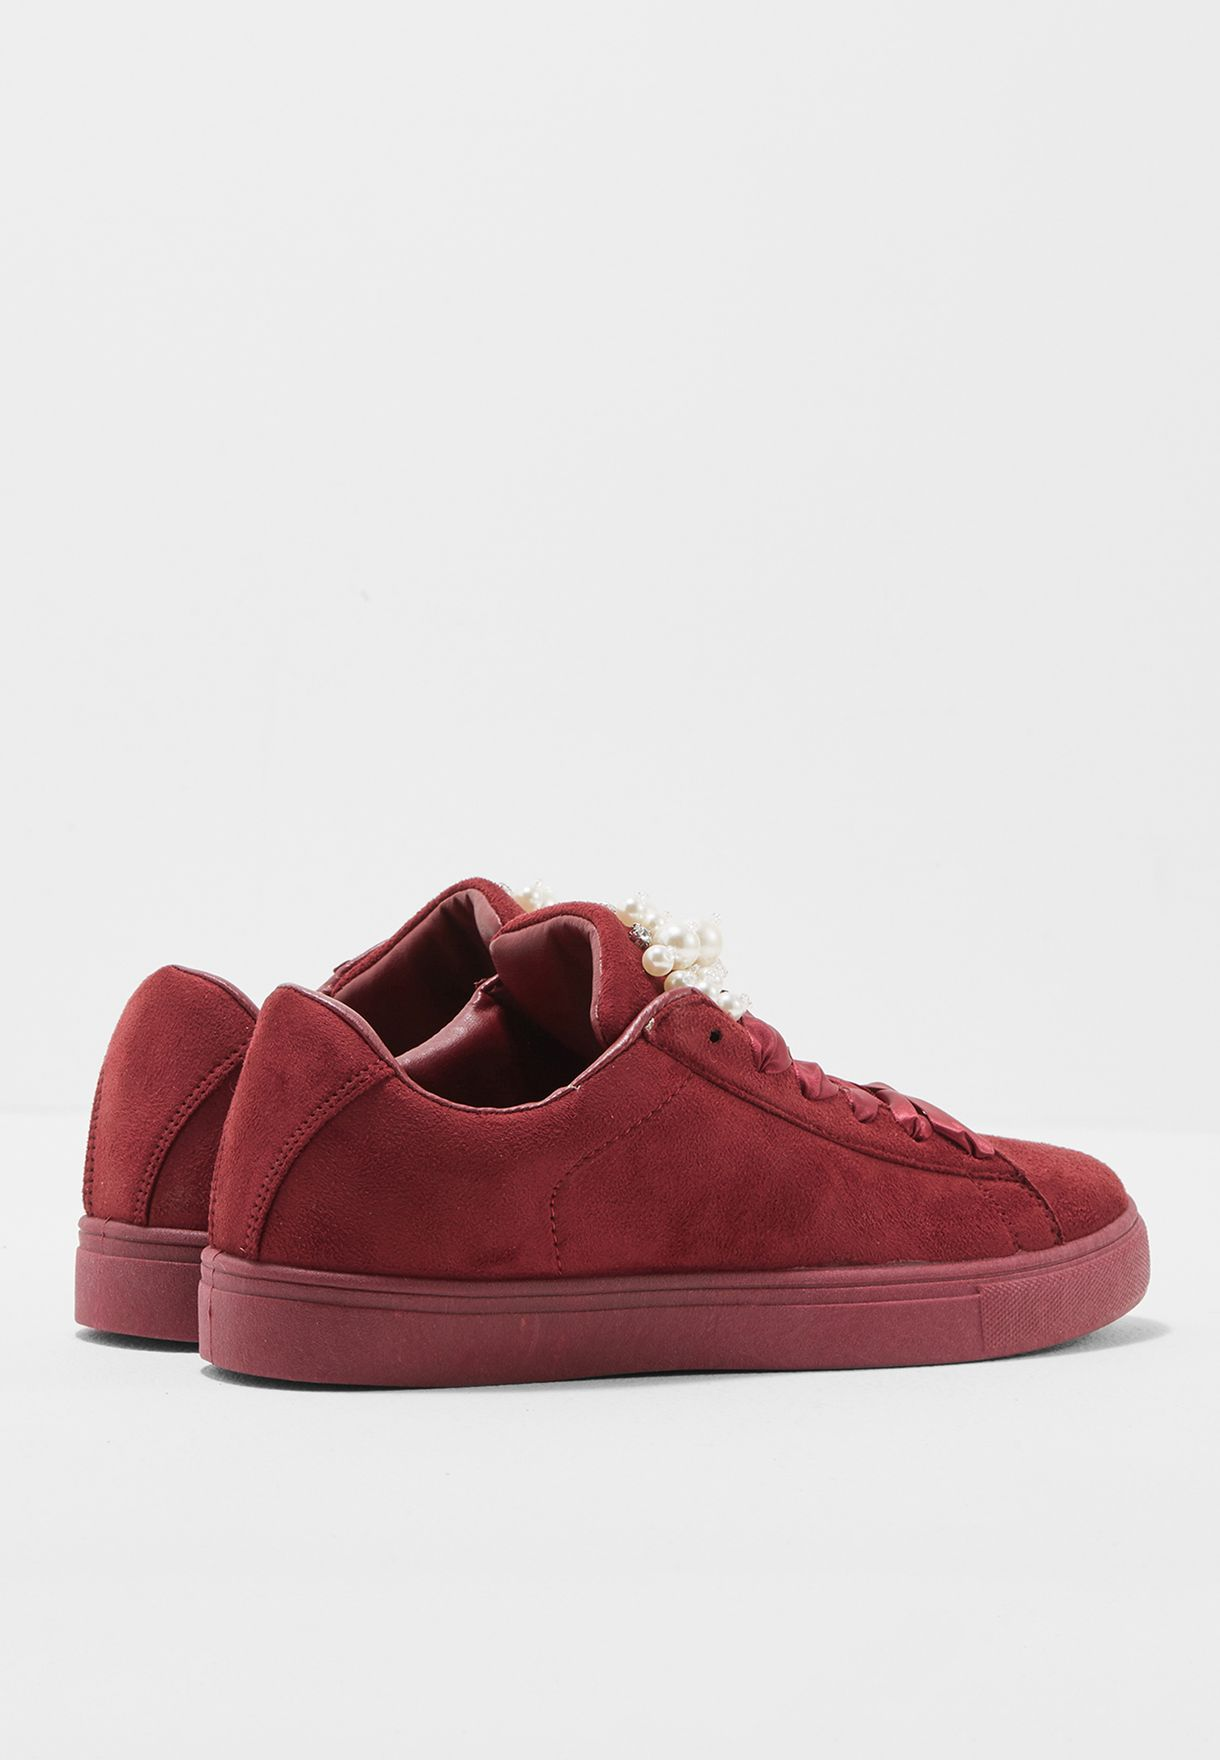 Nelly Low Top Sneakers